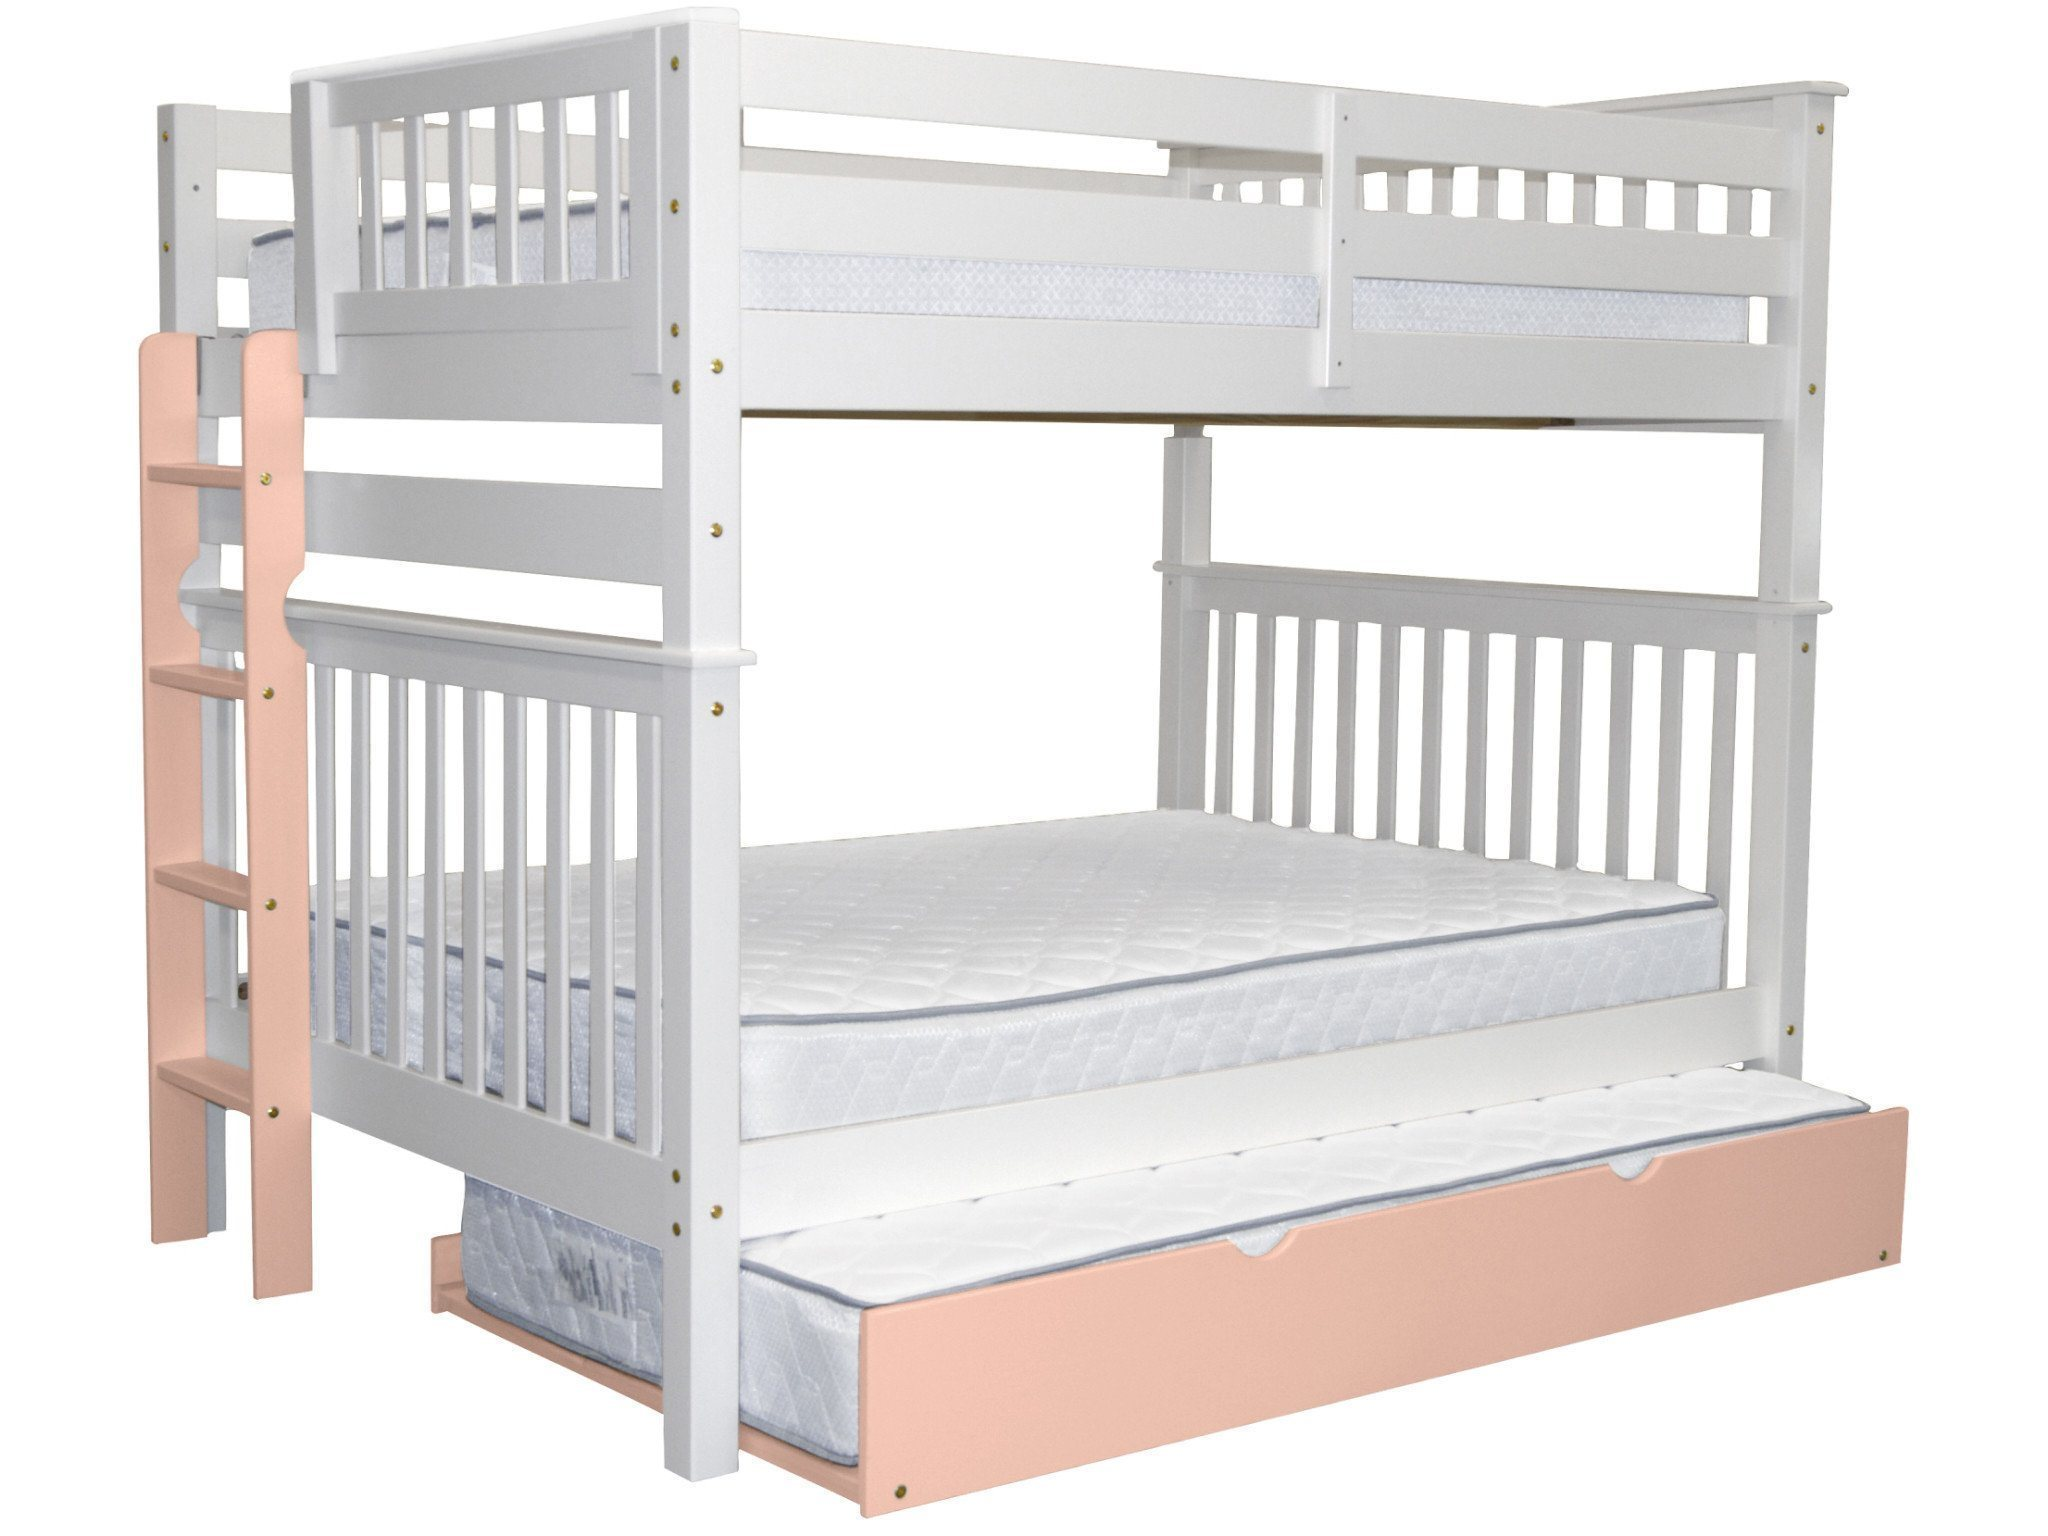 Bedz King Bunk Beds Full over Mission Style with a Pink End Ladder and